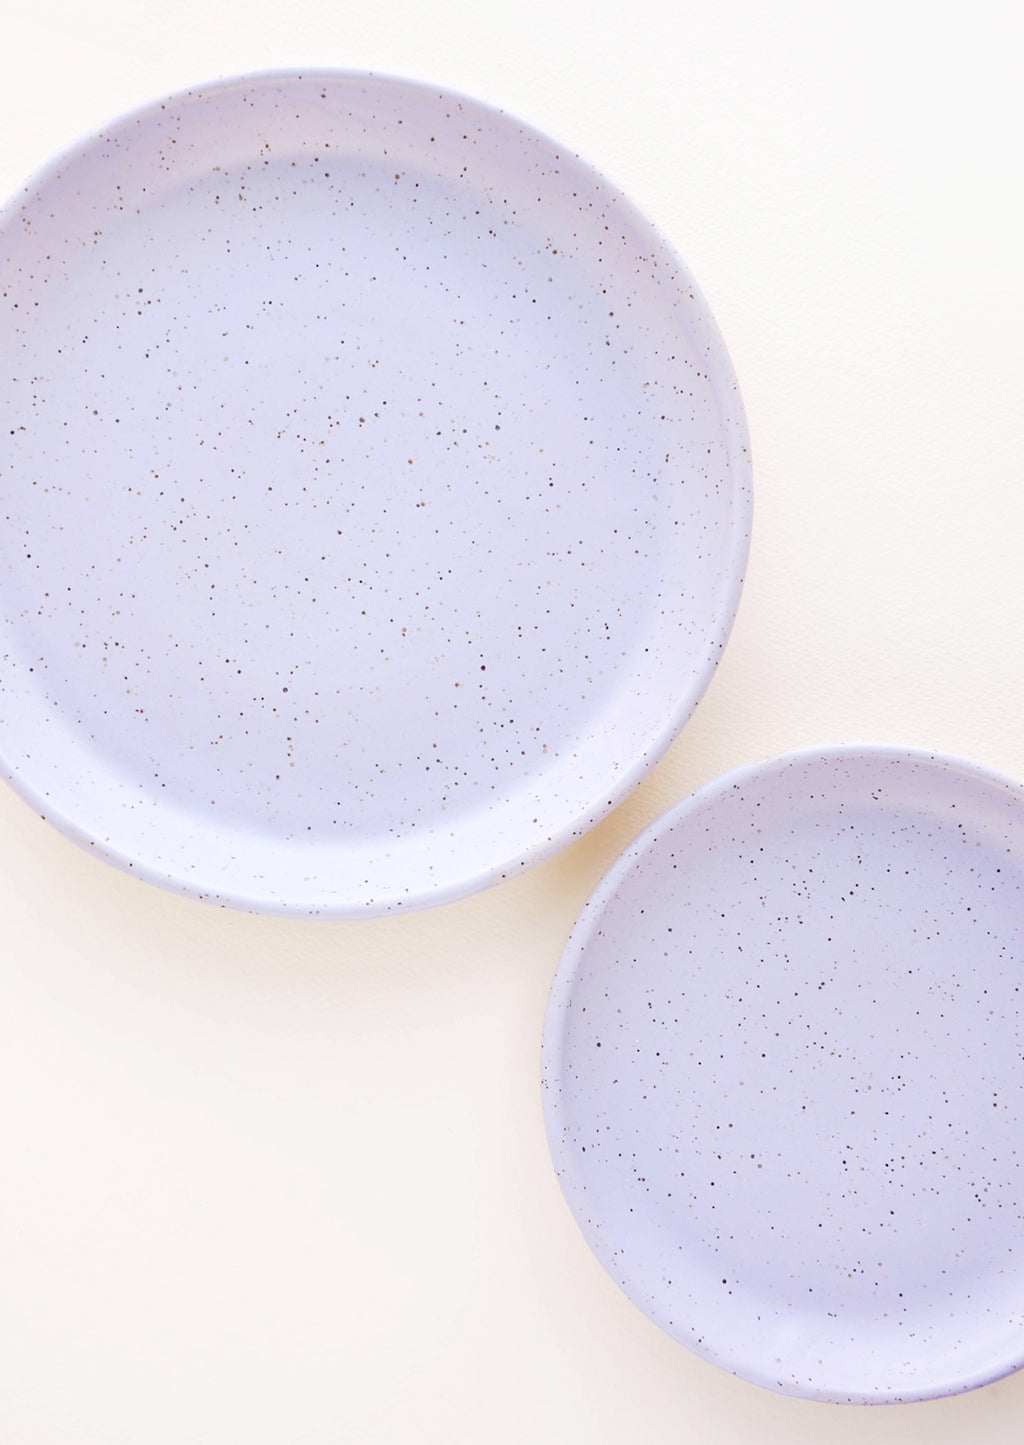 Wisteria / Salad Plate: A pair of Lavender Colored Speckled Ceramic Salad & Dinner Plates.